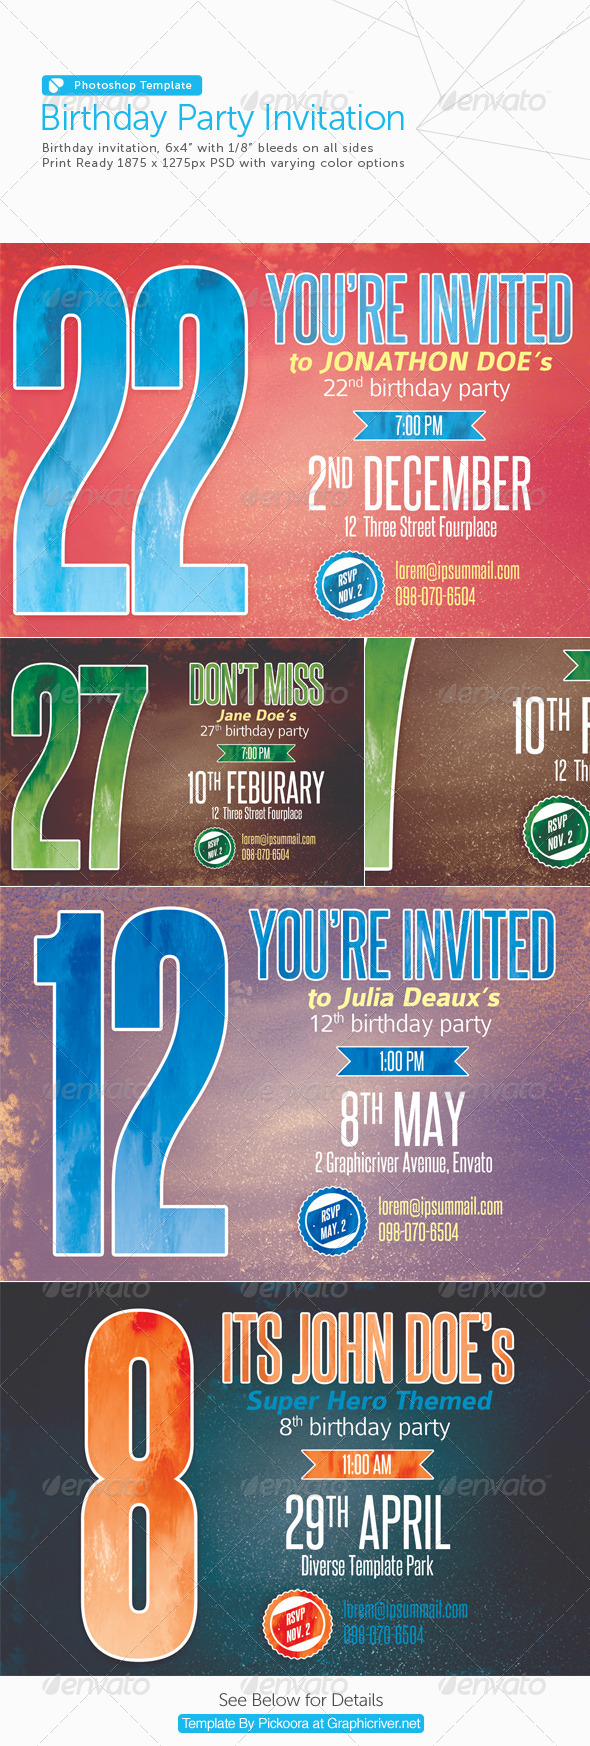 GraphicRiver Birthday Party Invitation Postcard 6329326